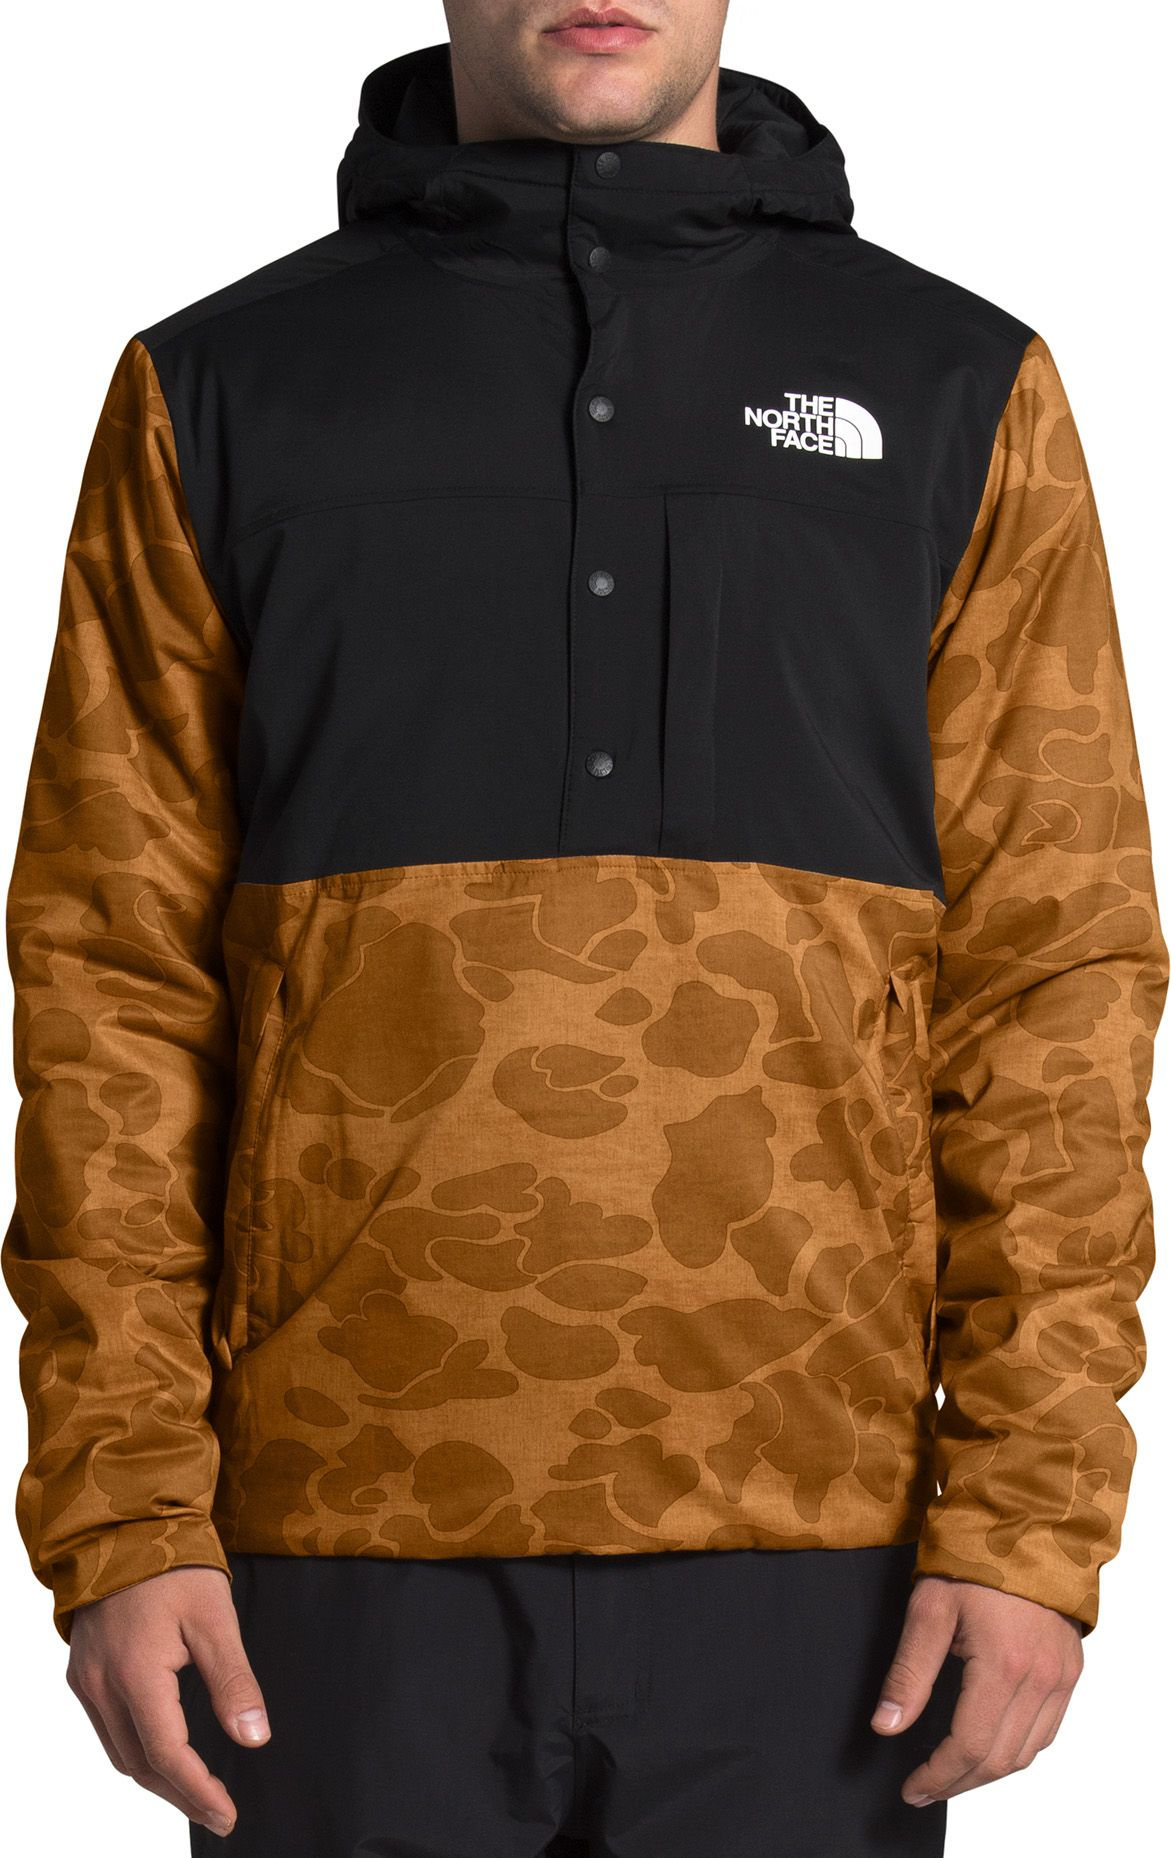 The North Face Men's Fallback 1/2 Snap Pullover Jacket, Medium, Timber Tan Duck Camo